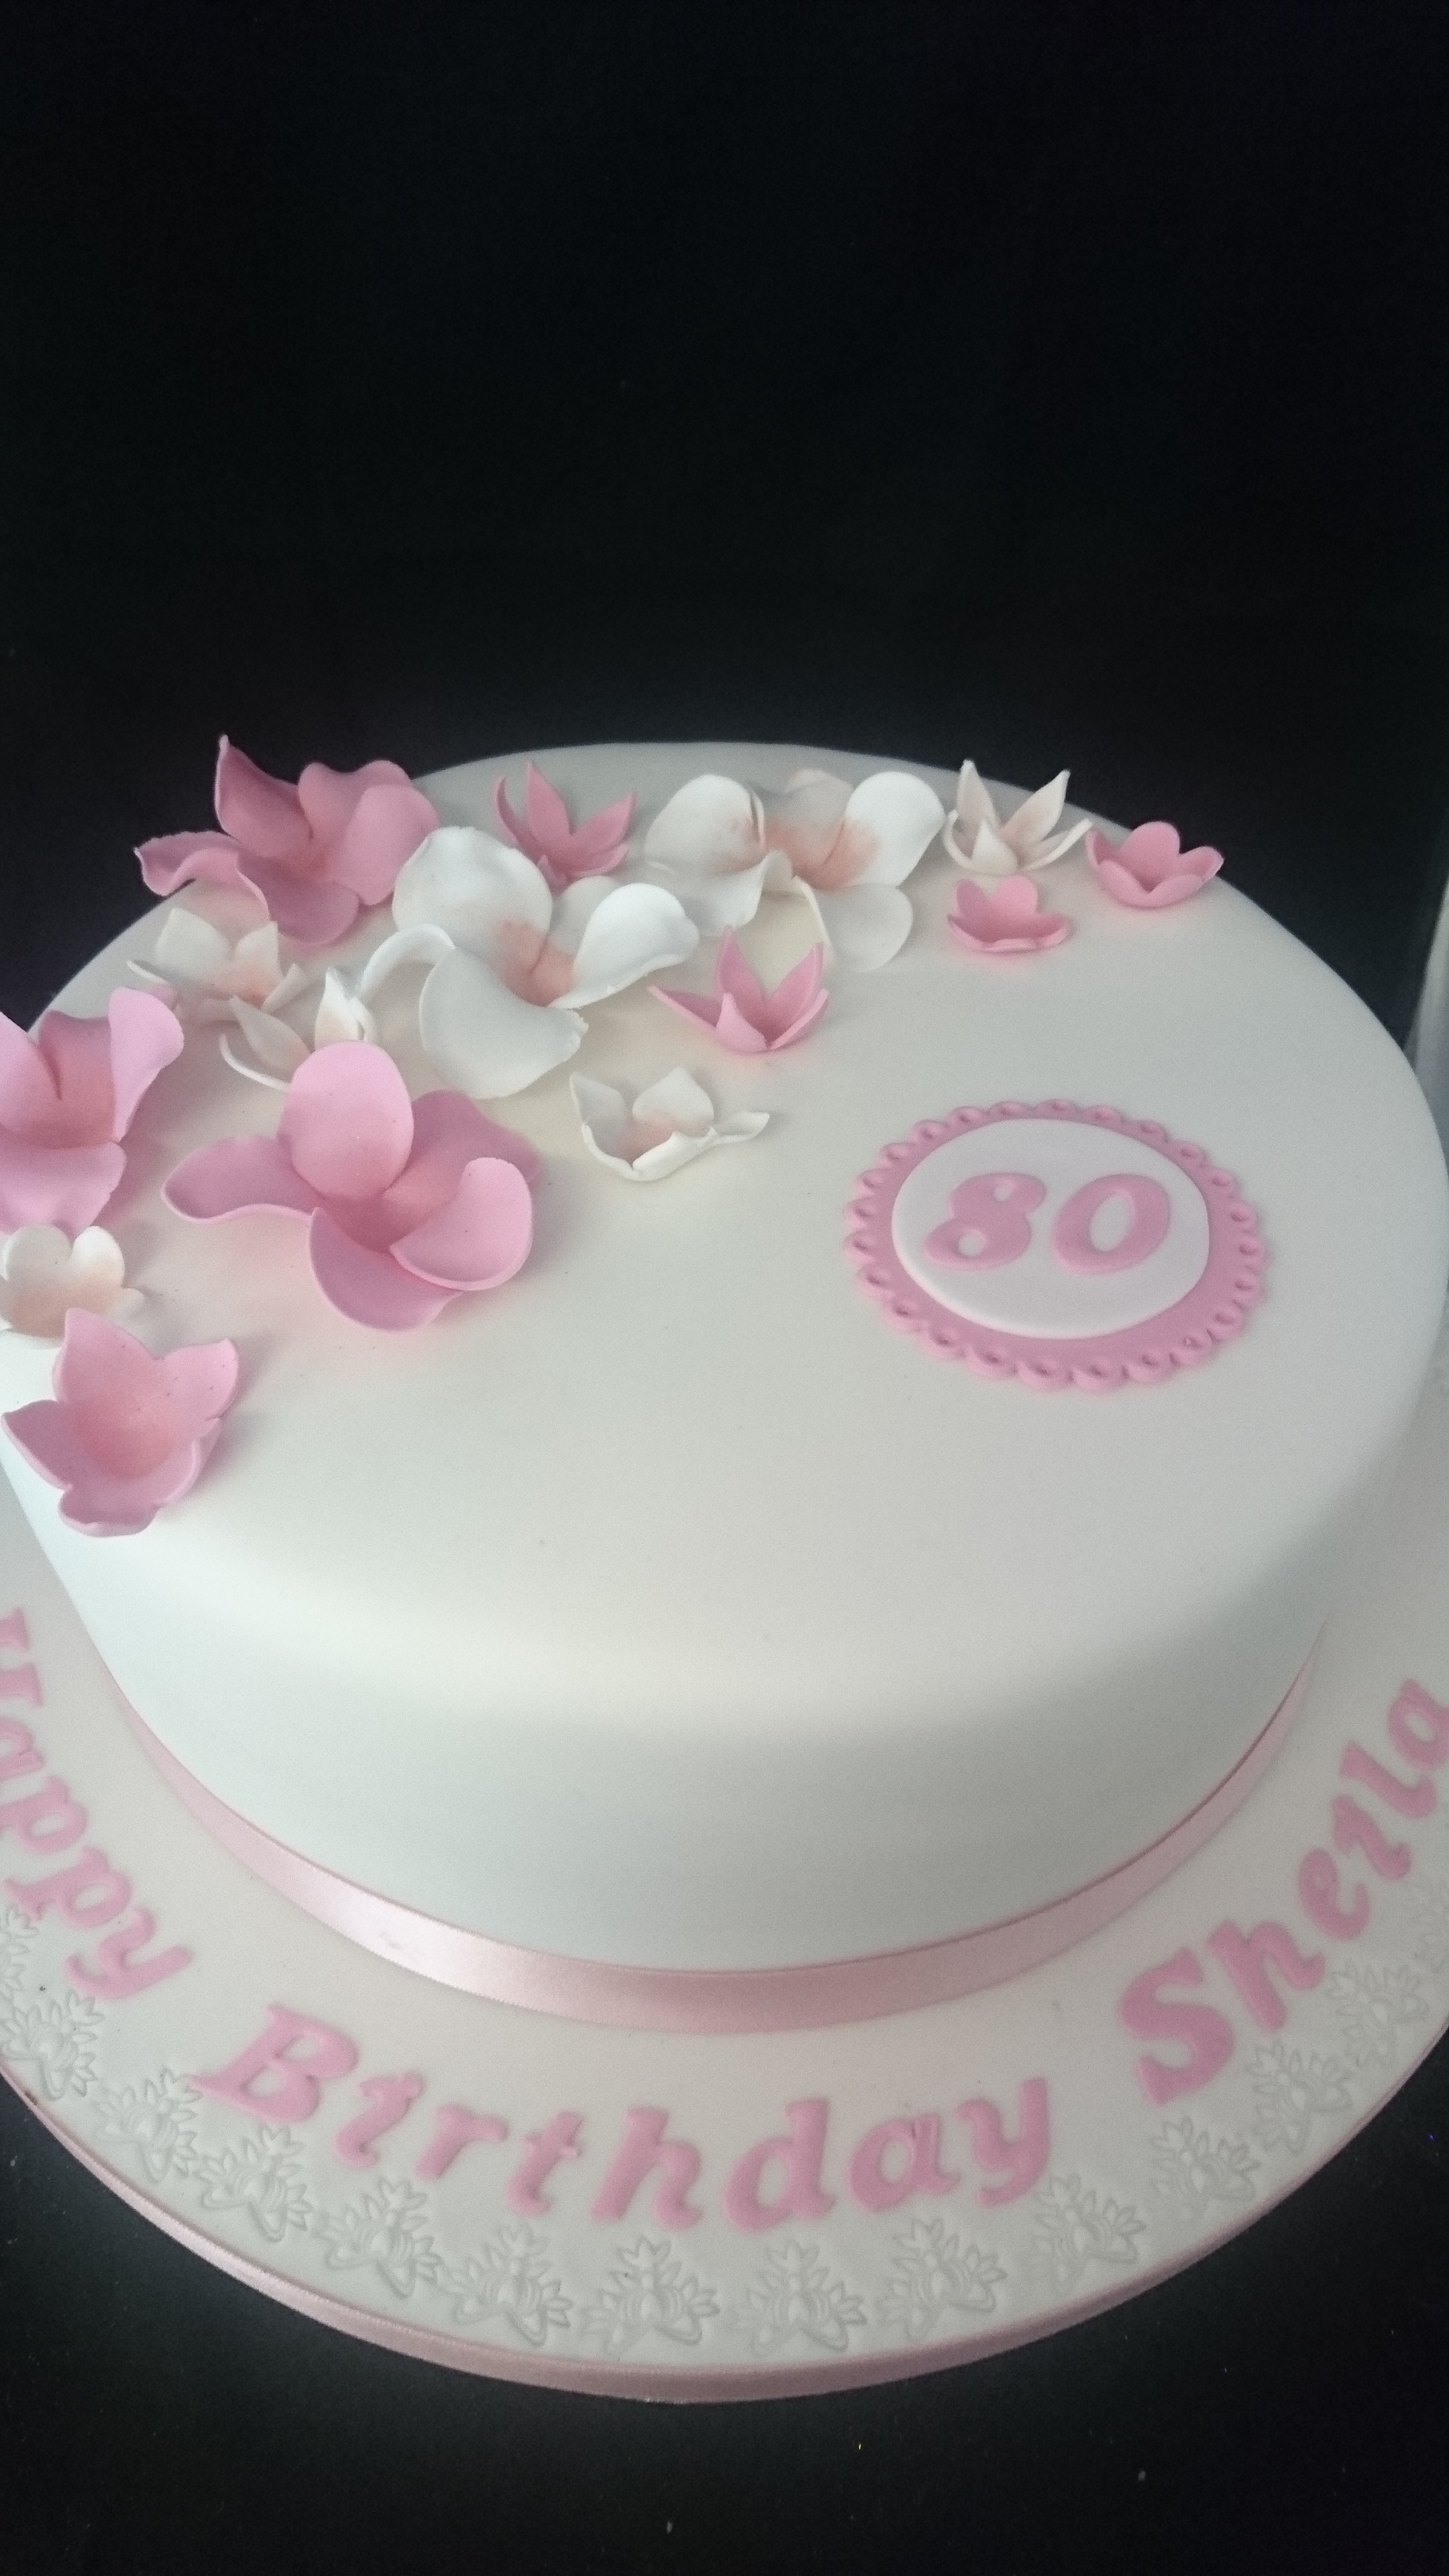 Sensational Female Birthday Cakes Cakes By P Female Birthday Cakes Manchester Funny Birthday Cards Online Alyptdamsfinfo